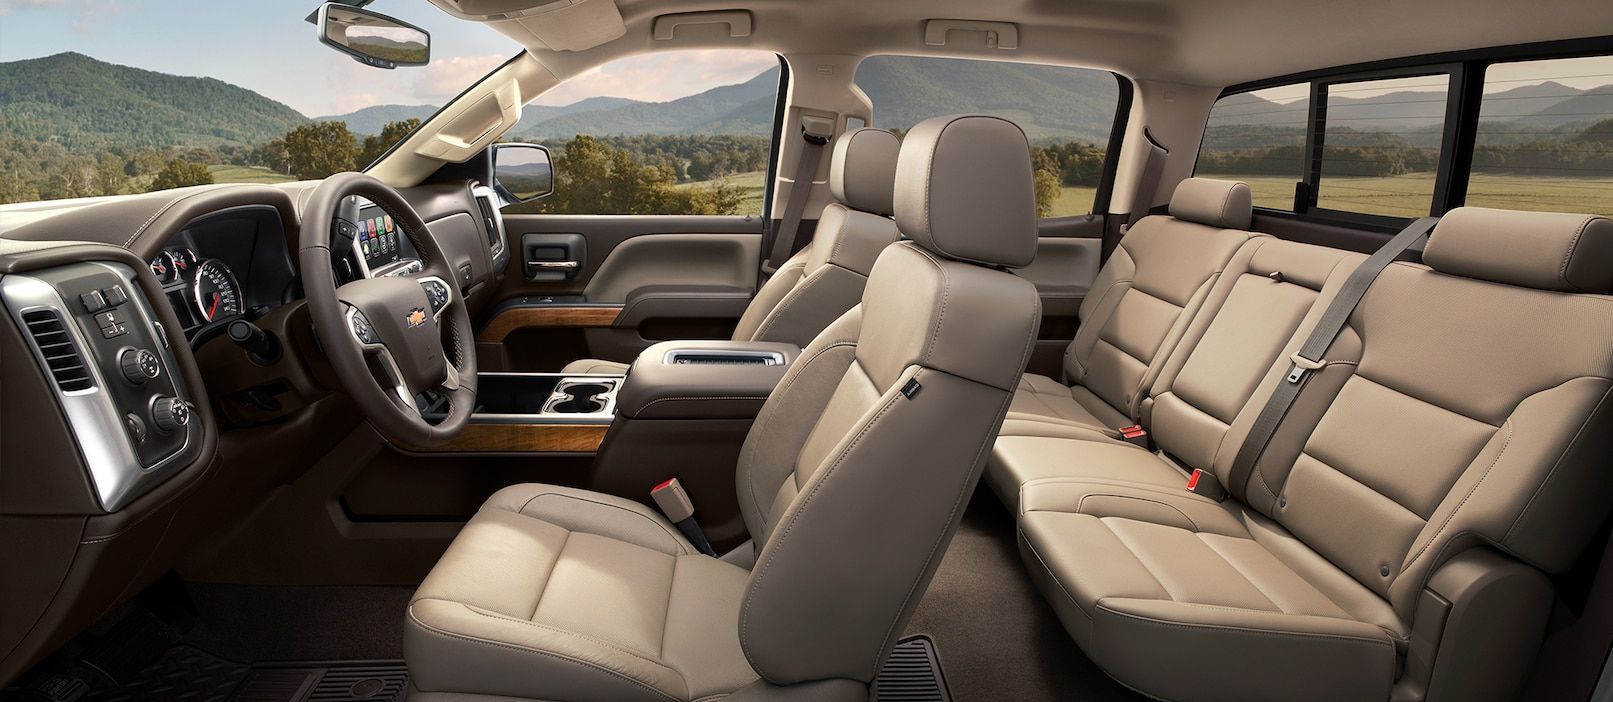 Enjoy Optimum Comfort During Any Drive in the Silverado 1500!